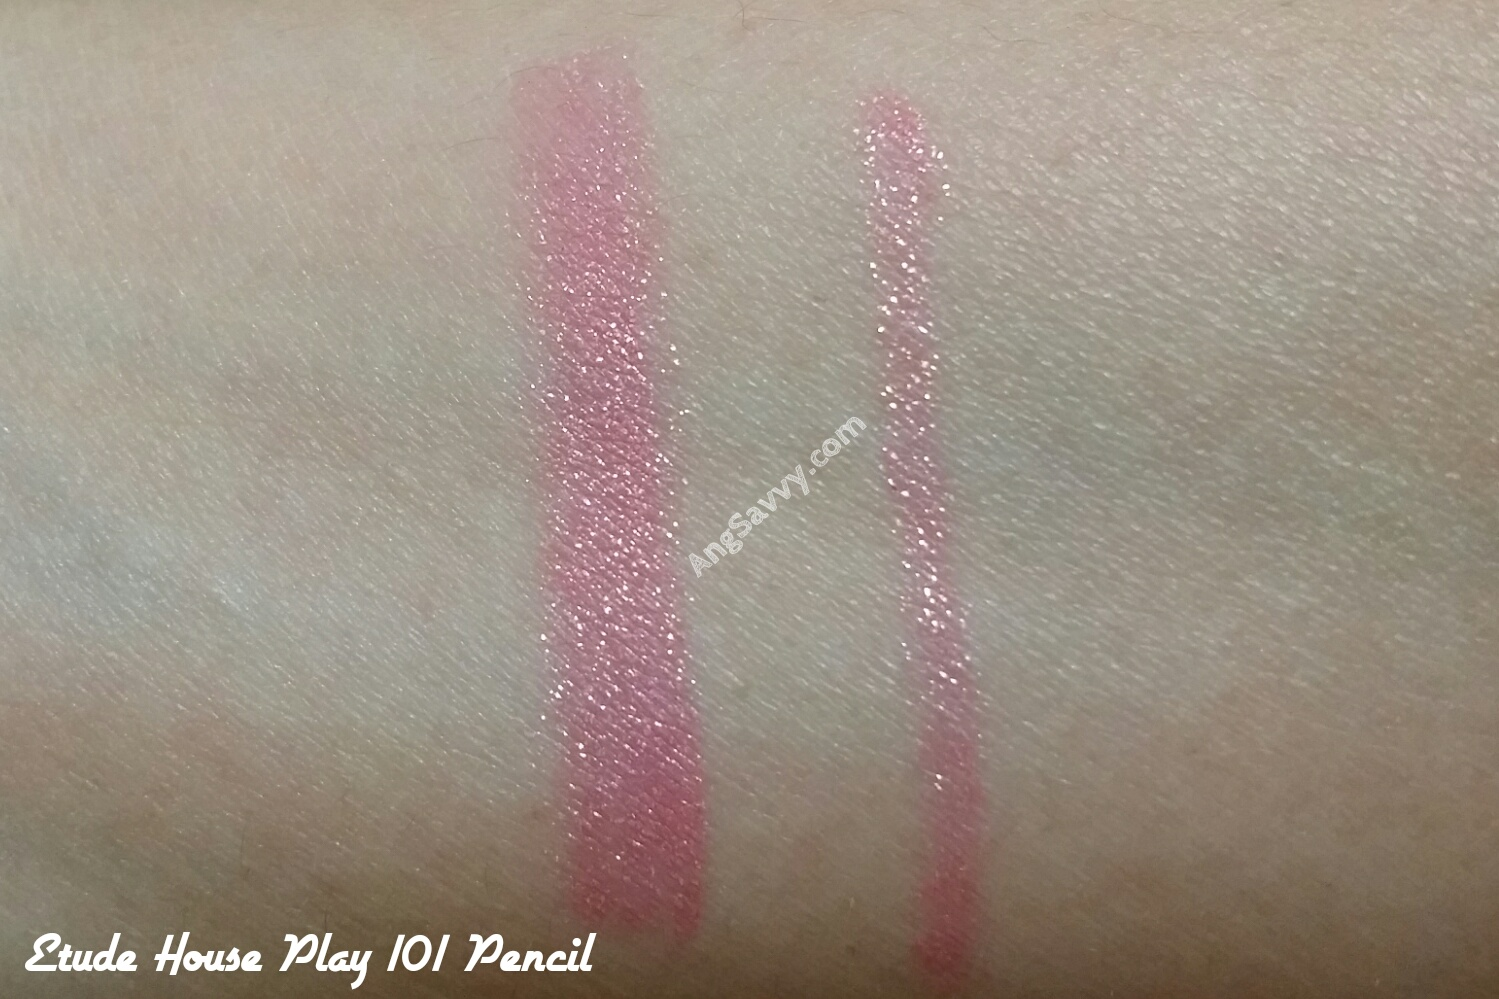 Etude House Play 101 Pencil 27 Swatch